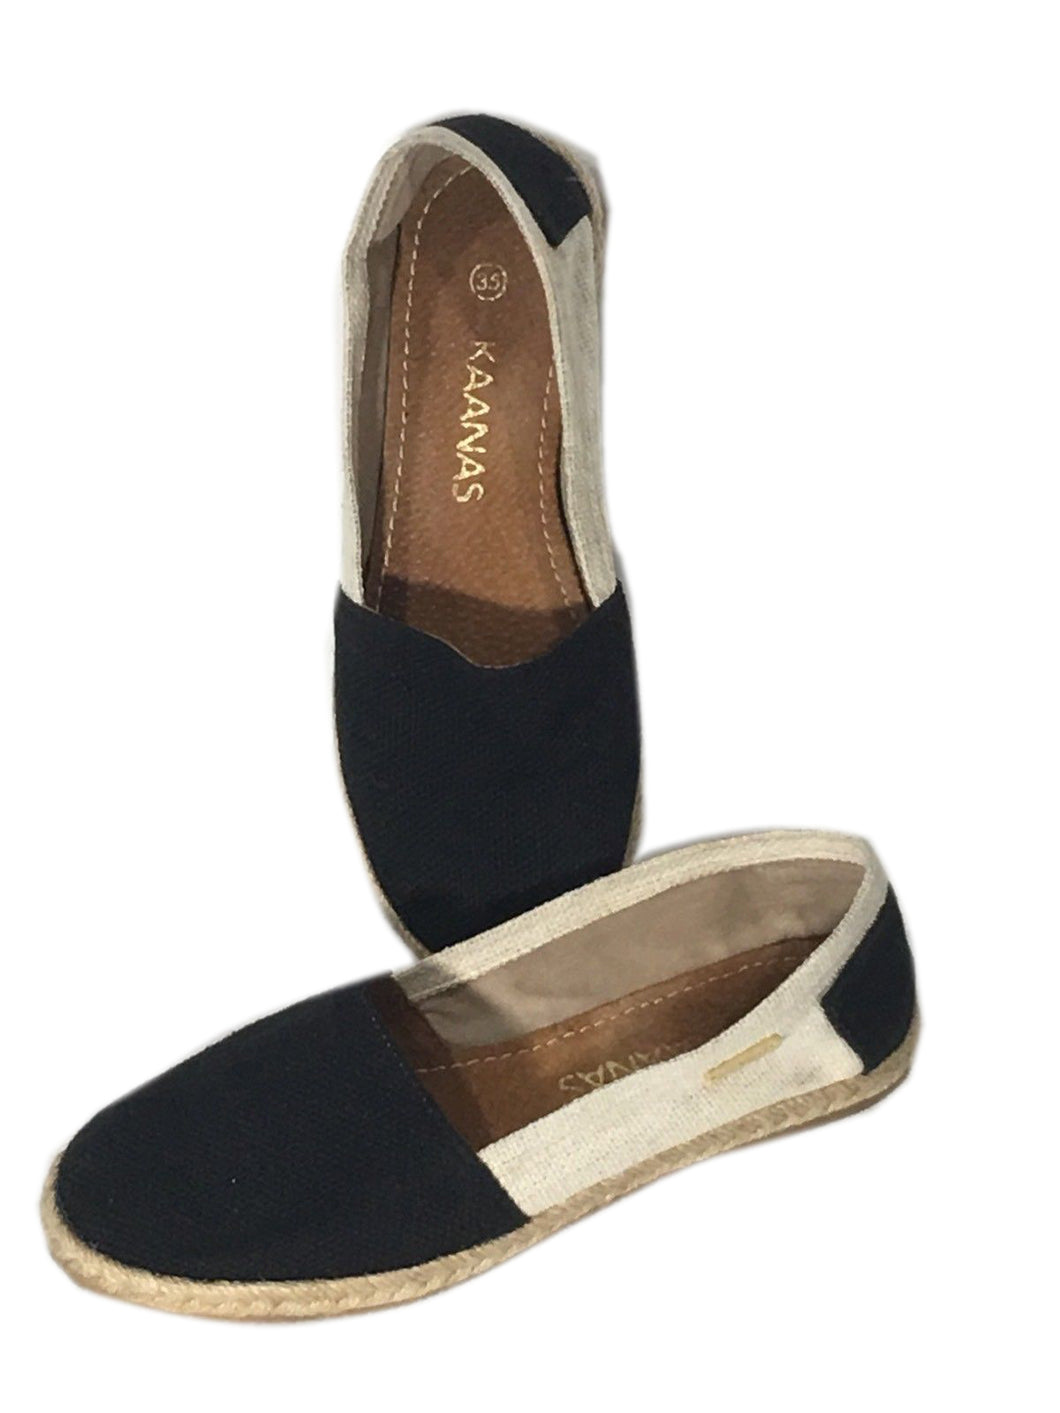 Kaanas Espadrilles Shoes Slip On Loafers Black Tan Flats Womens US Size 5 EU 35 - Preowned - FunkyCrap Boutique